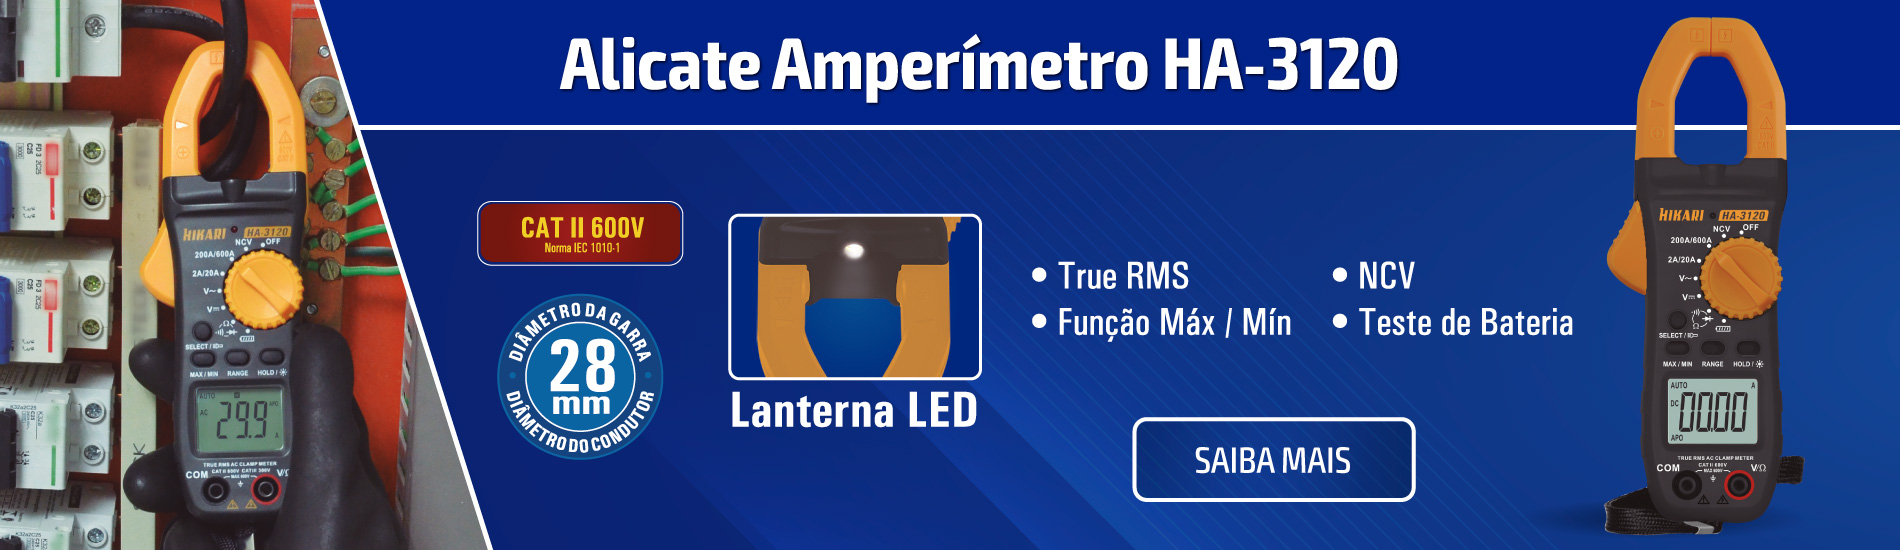 Alicate Amperímetro Digital True RMS CATII 600V Hikari HA-3120